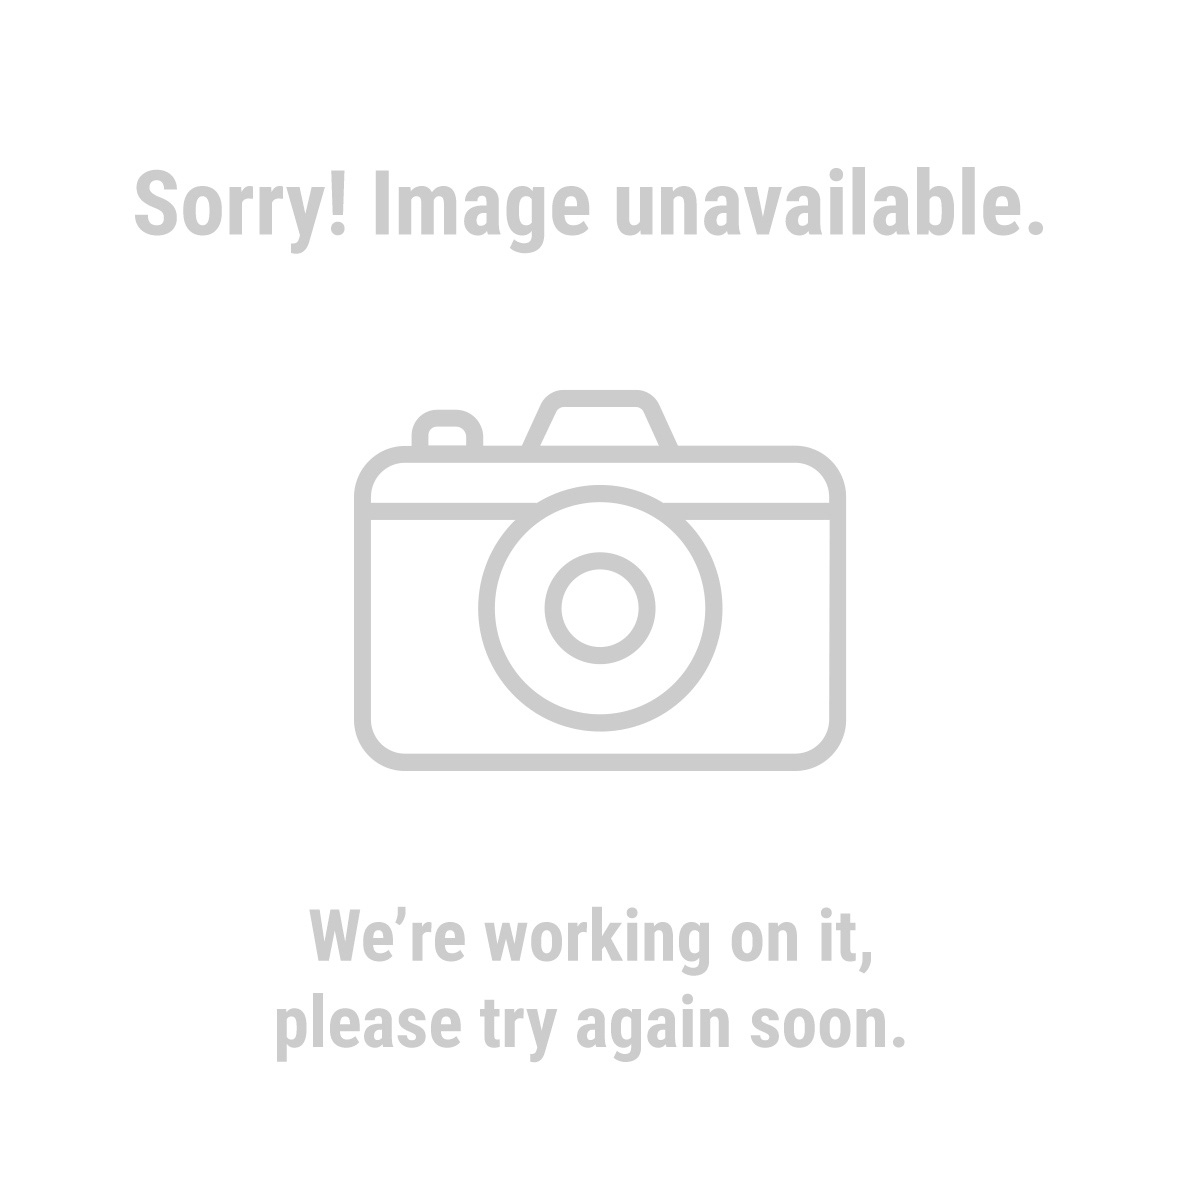 Haul-Master 96462 Trailer Sway Control Kit